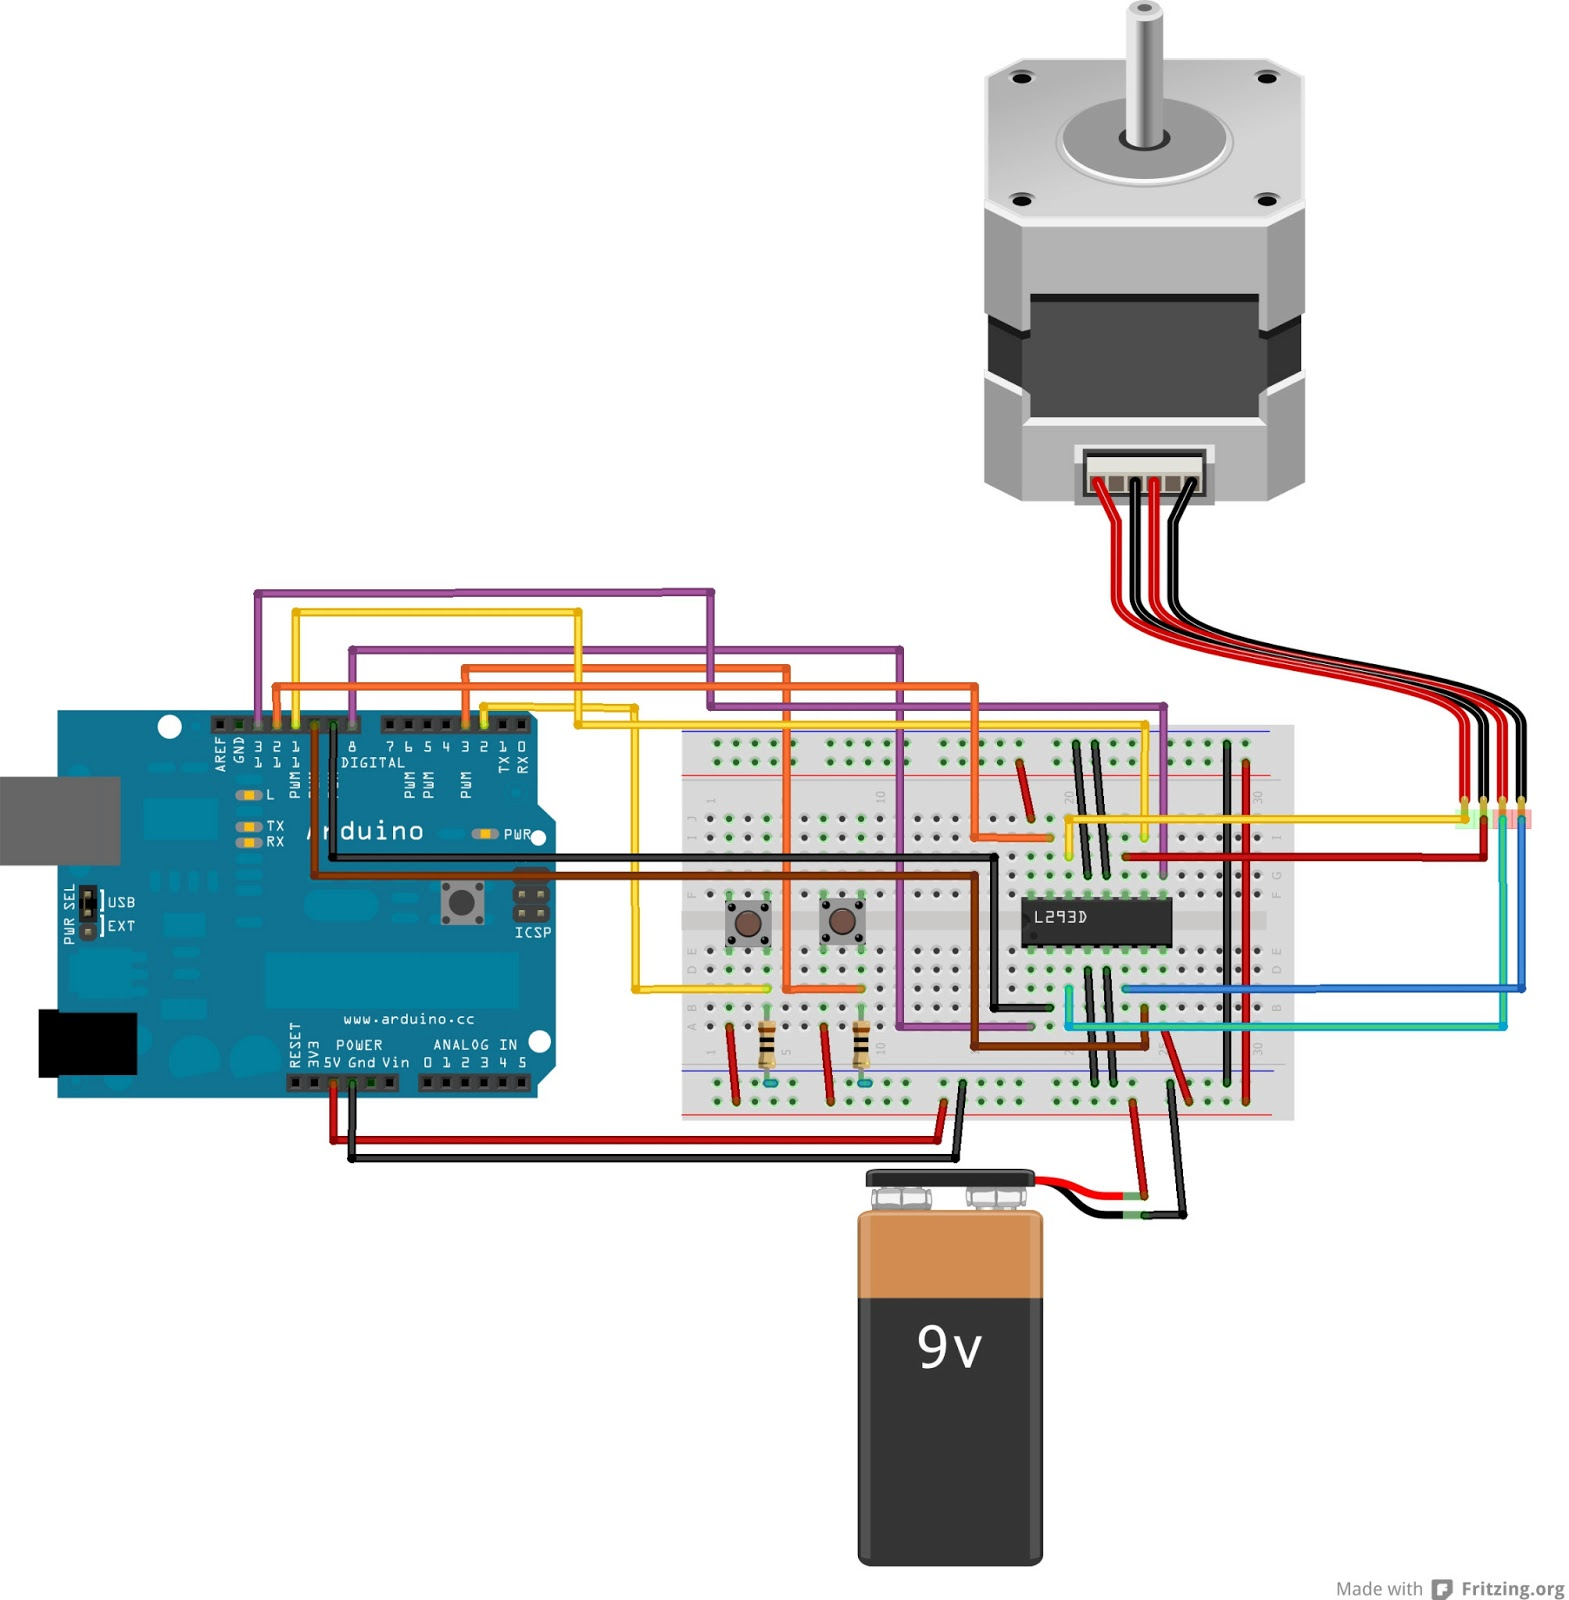 4 wire motor connection diagram signalstation vegesack stepper controller schematic get free image